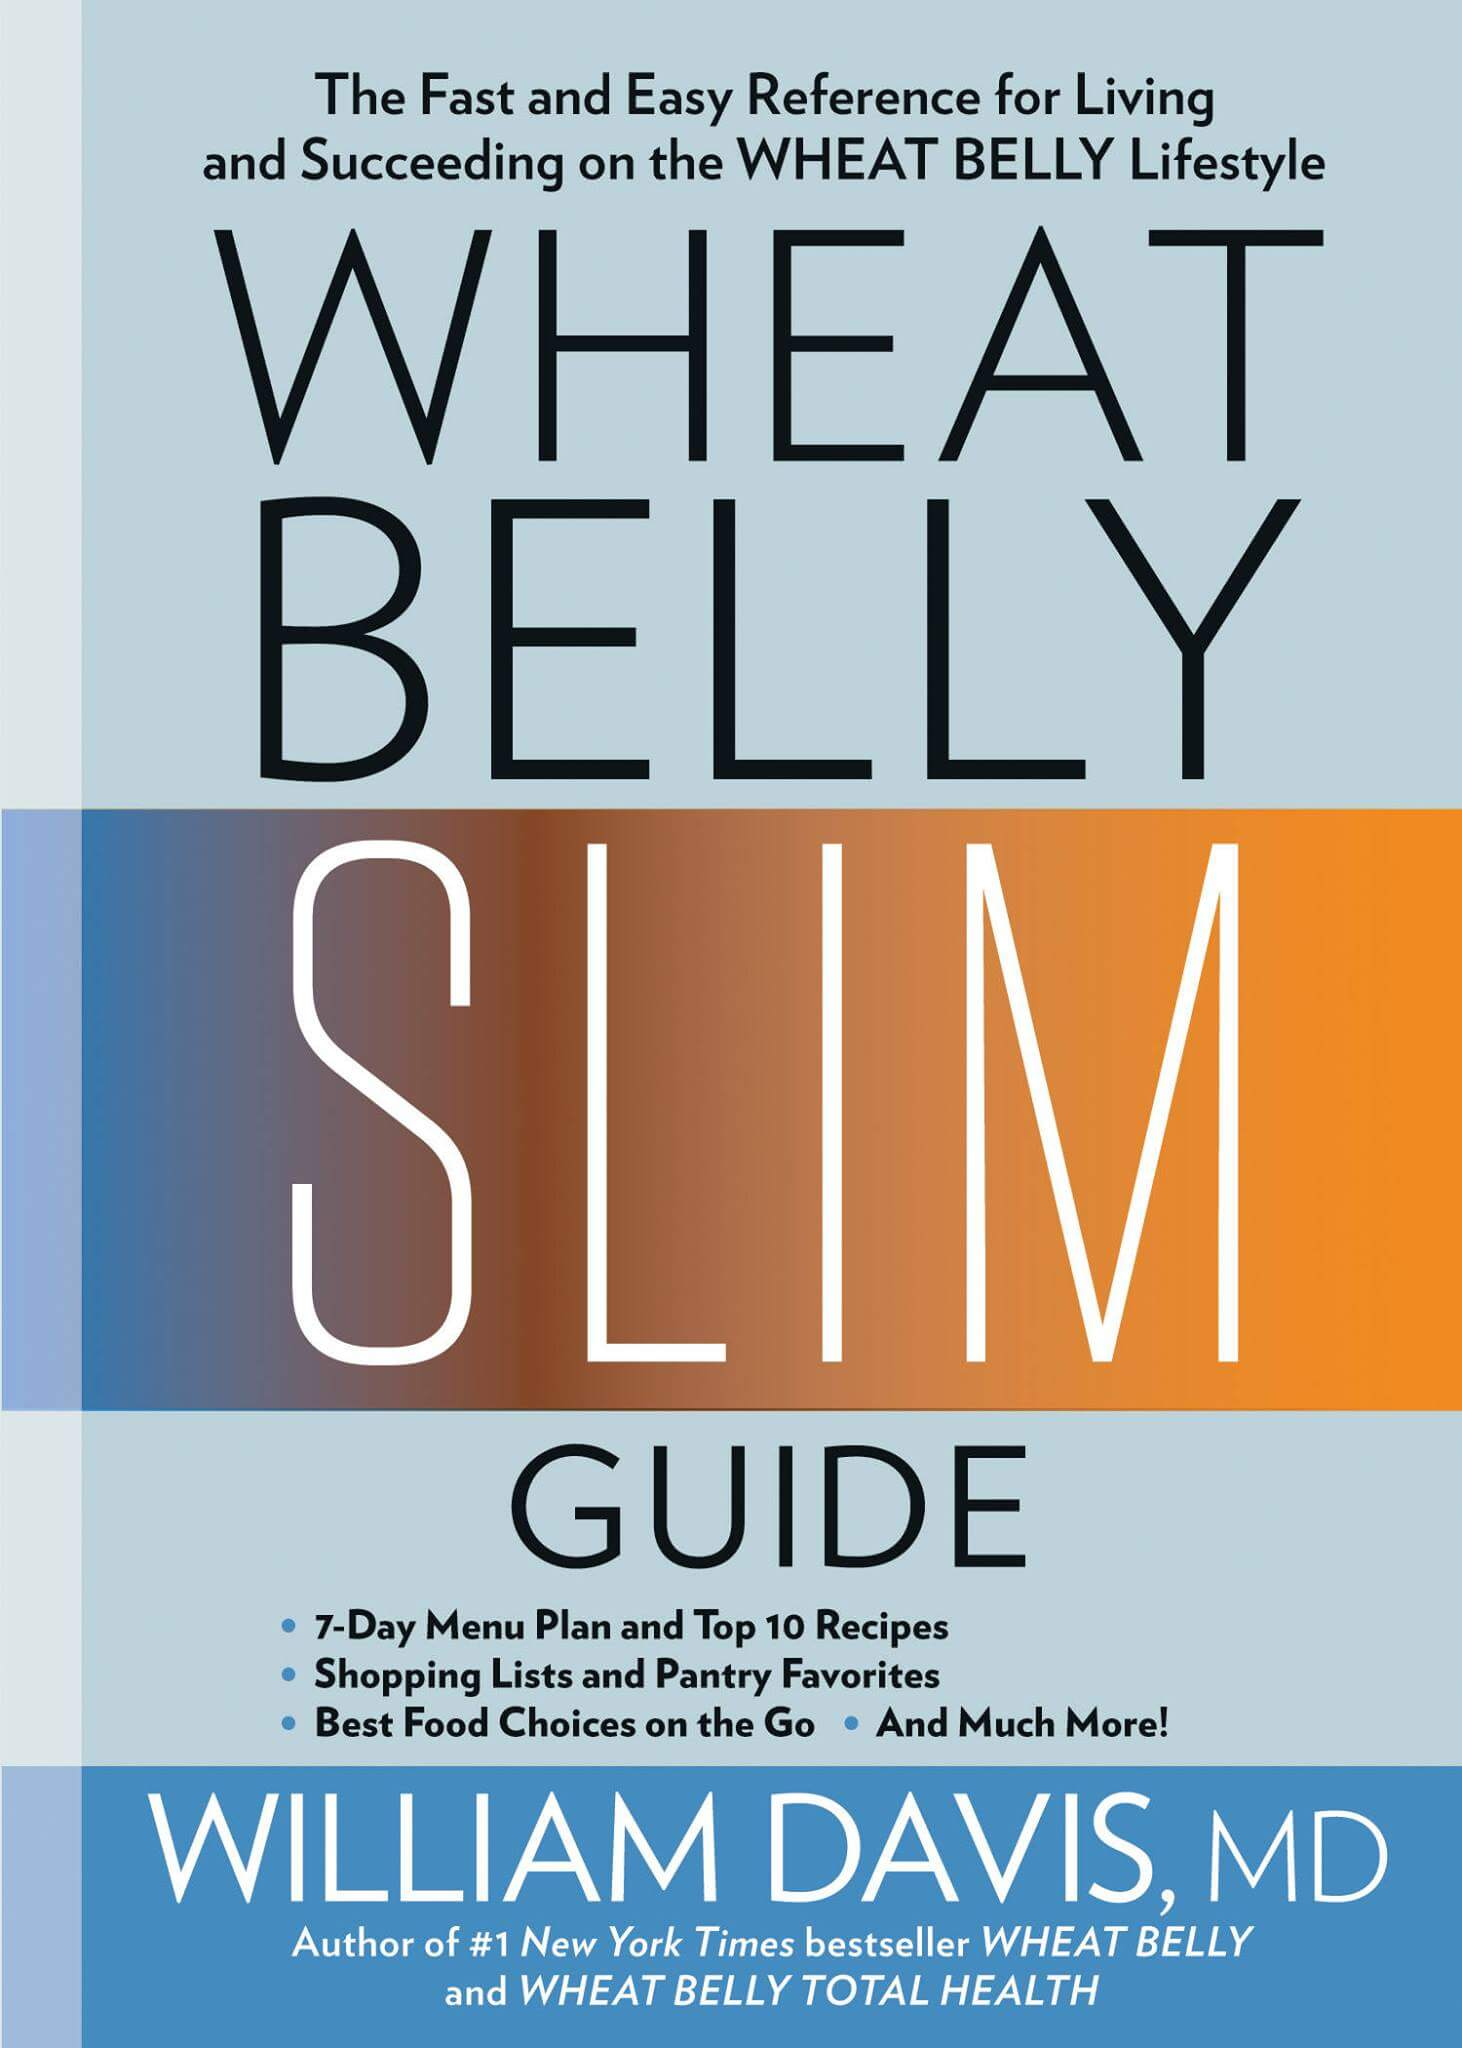 Wheat Belly Slim Guide now available! | Dr. William Davis